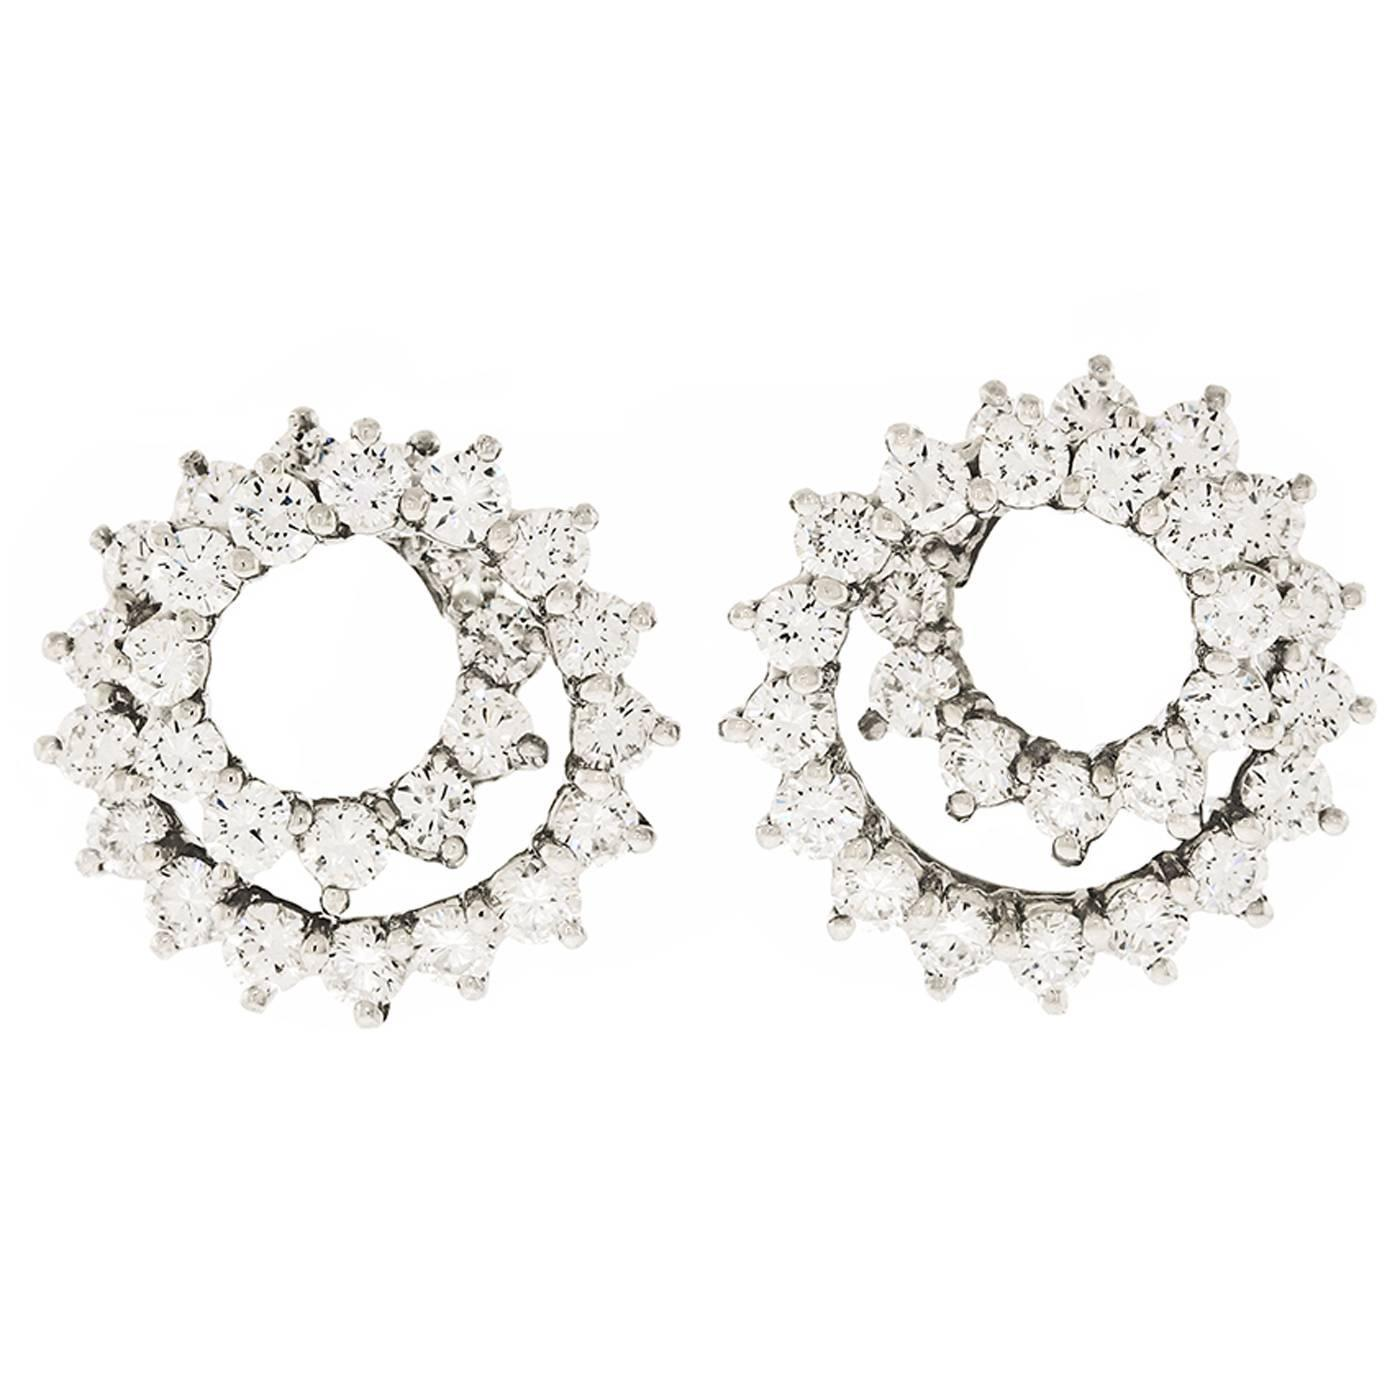 Tiffany and Co Diamond Set Swirl Earrings in Platinum at 1stdibs